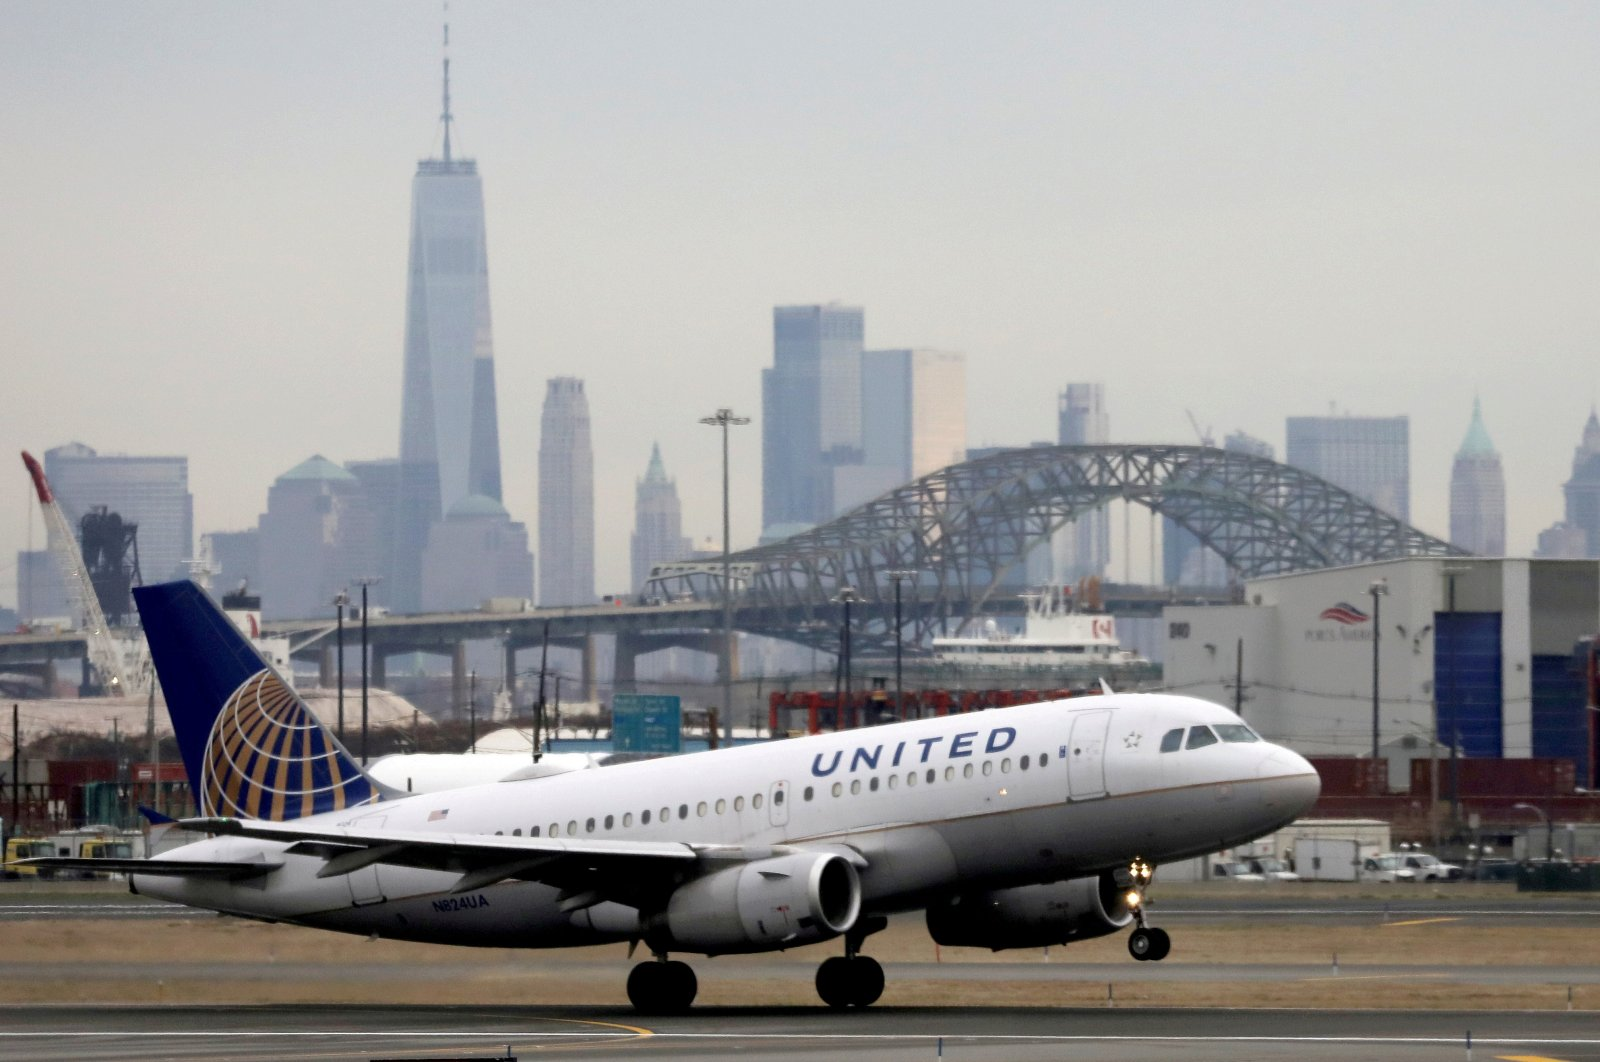 A United Airlines passenger jet takes off with New York City as a backdrop, at Newark Liberty International Airport, New Jersey, U.S., Dec. 6, 2019. (Reuters Photo)